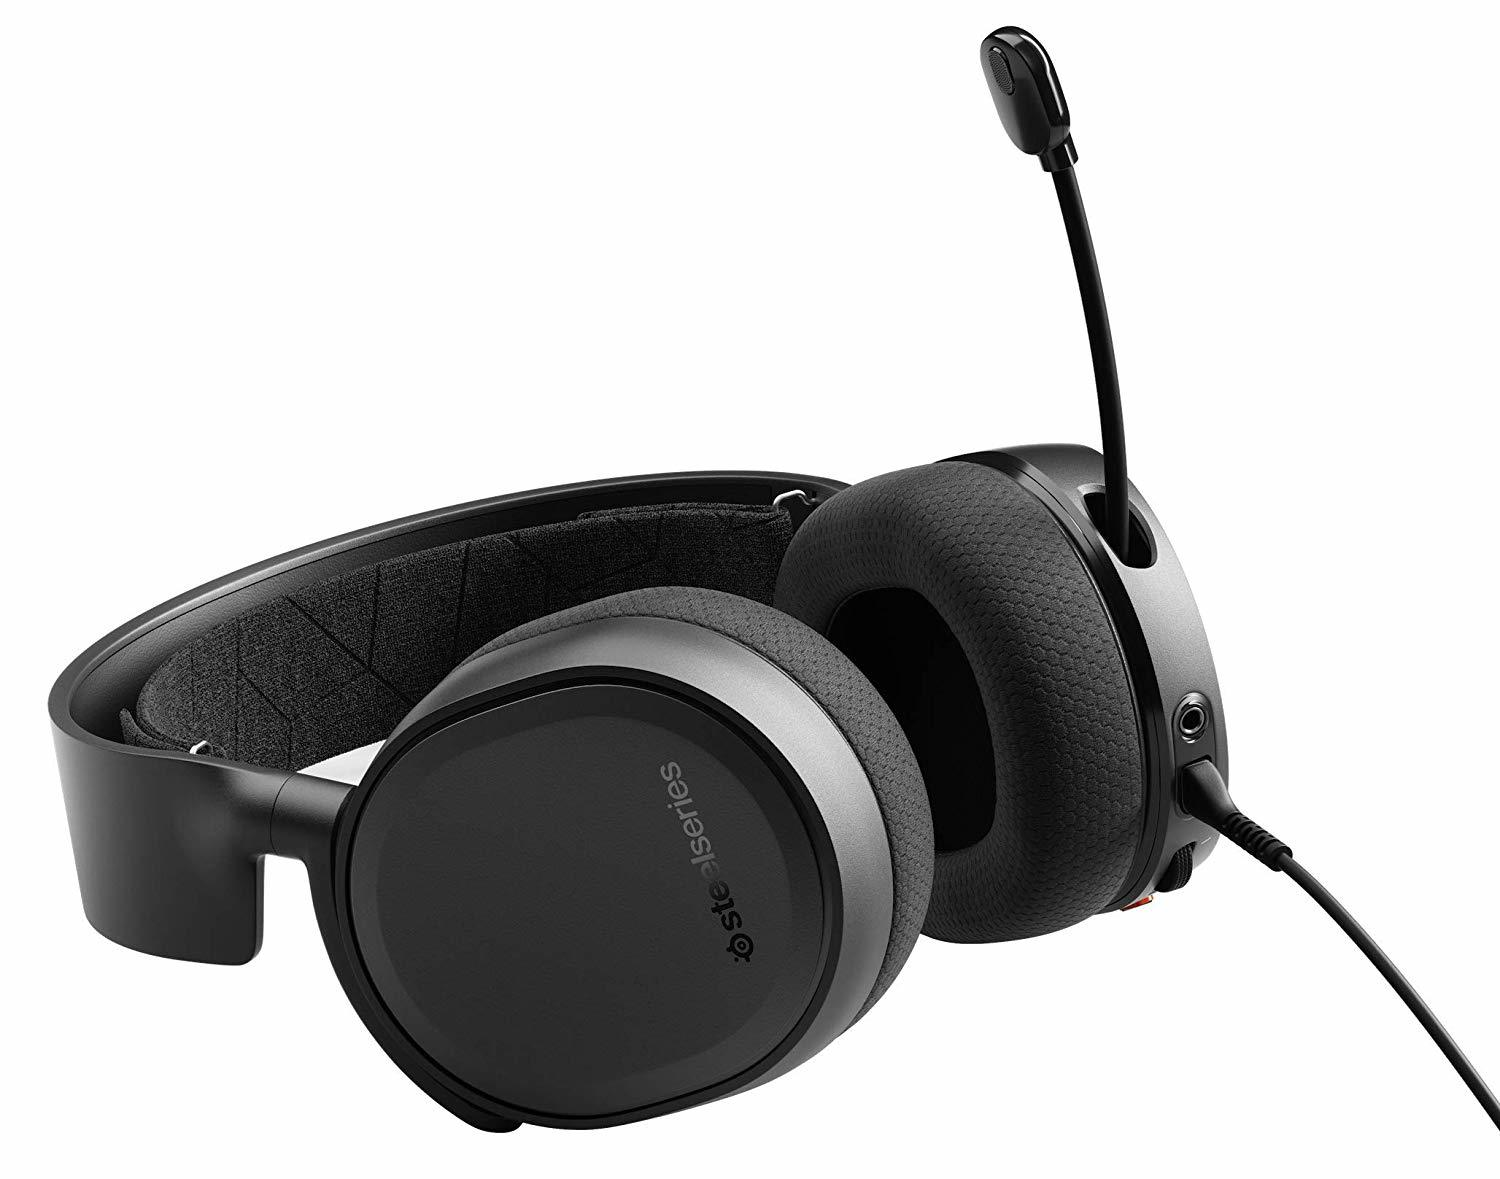 SteelSeries Arctis 3 Console Gaming Headset (Black) - Xbox One